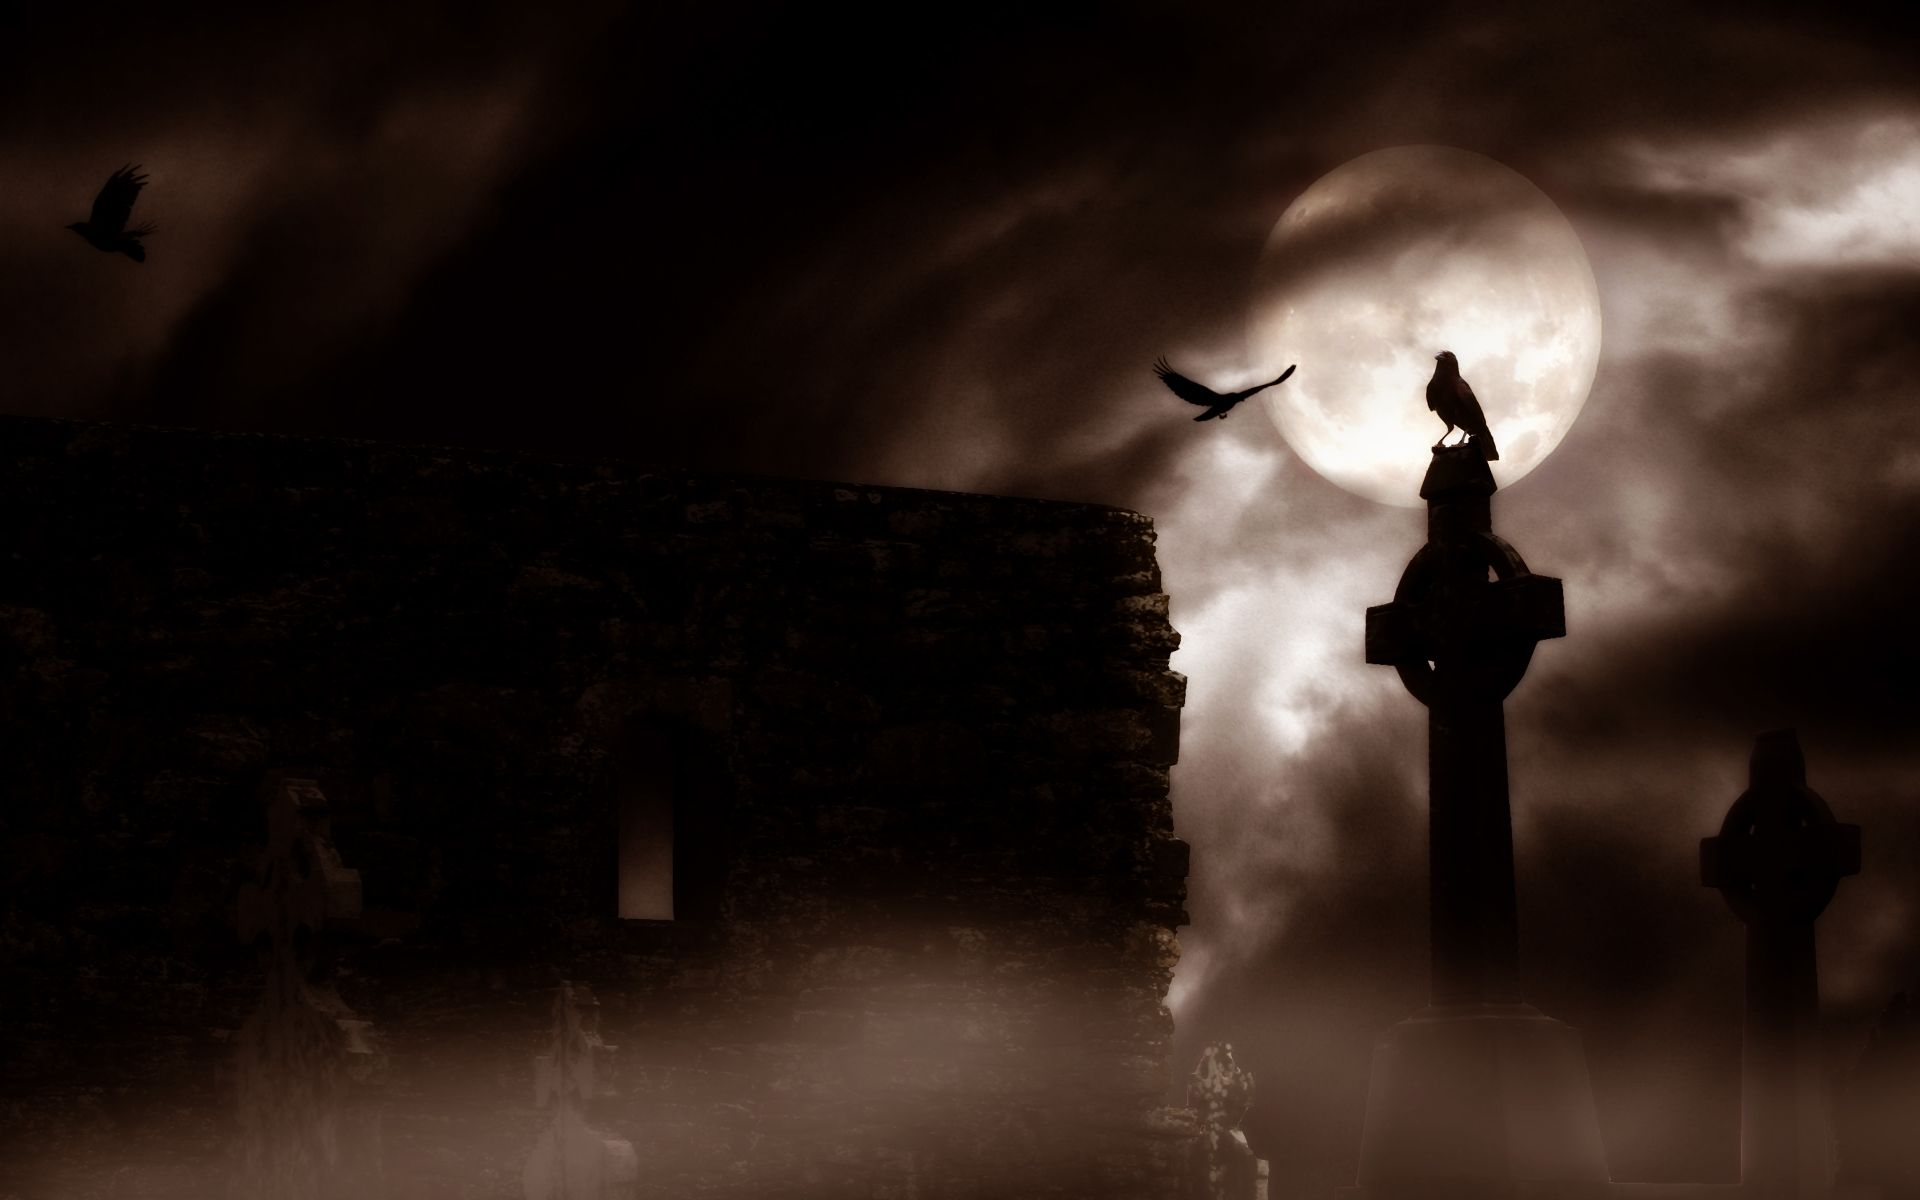 Dark Horror Gothic Raven Cemetery Graveyard Halloween Wallpaper